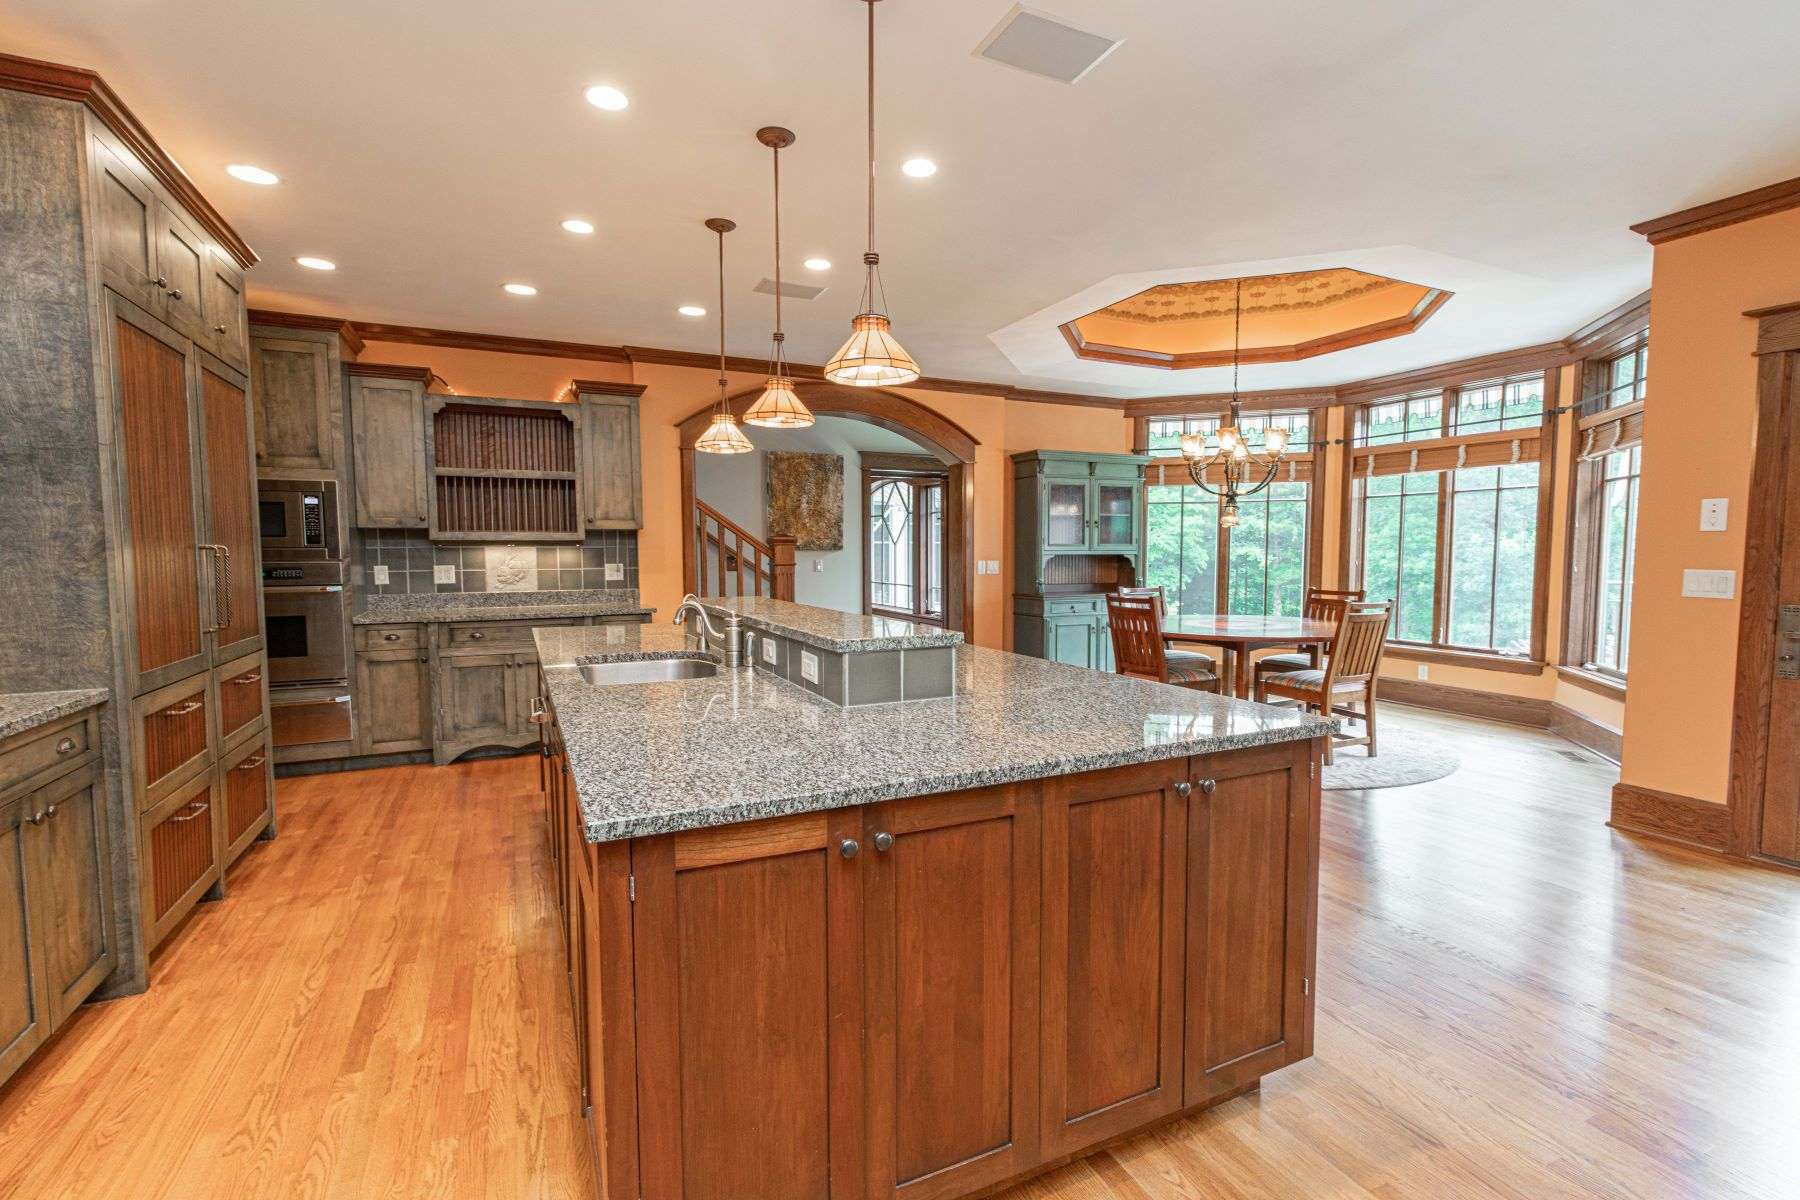 Additional photo for property listing at Resort-like amenities in the most private and peaceful setting 394 Larimore Valley Drive Wildwood, Missouri 63005 United States